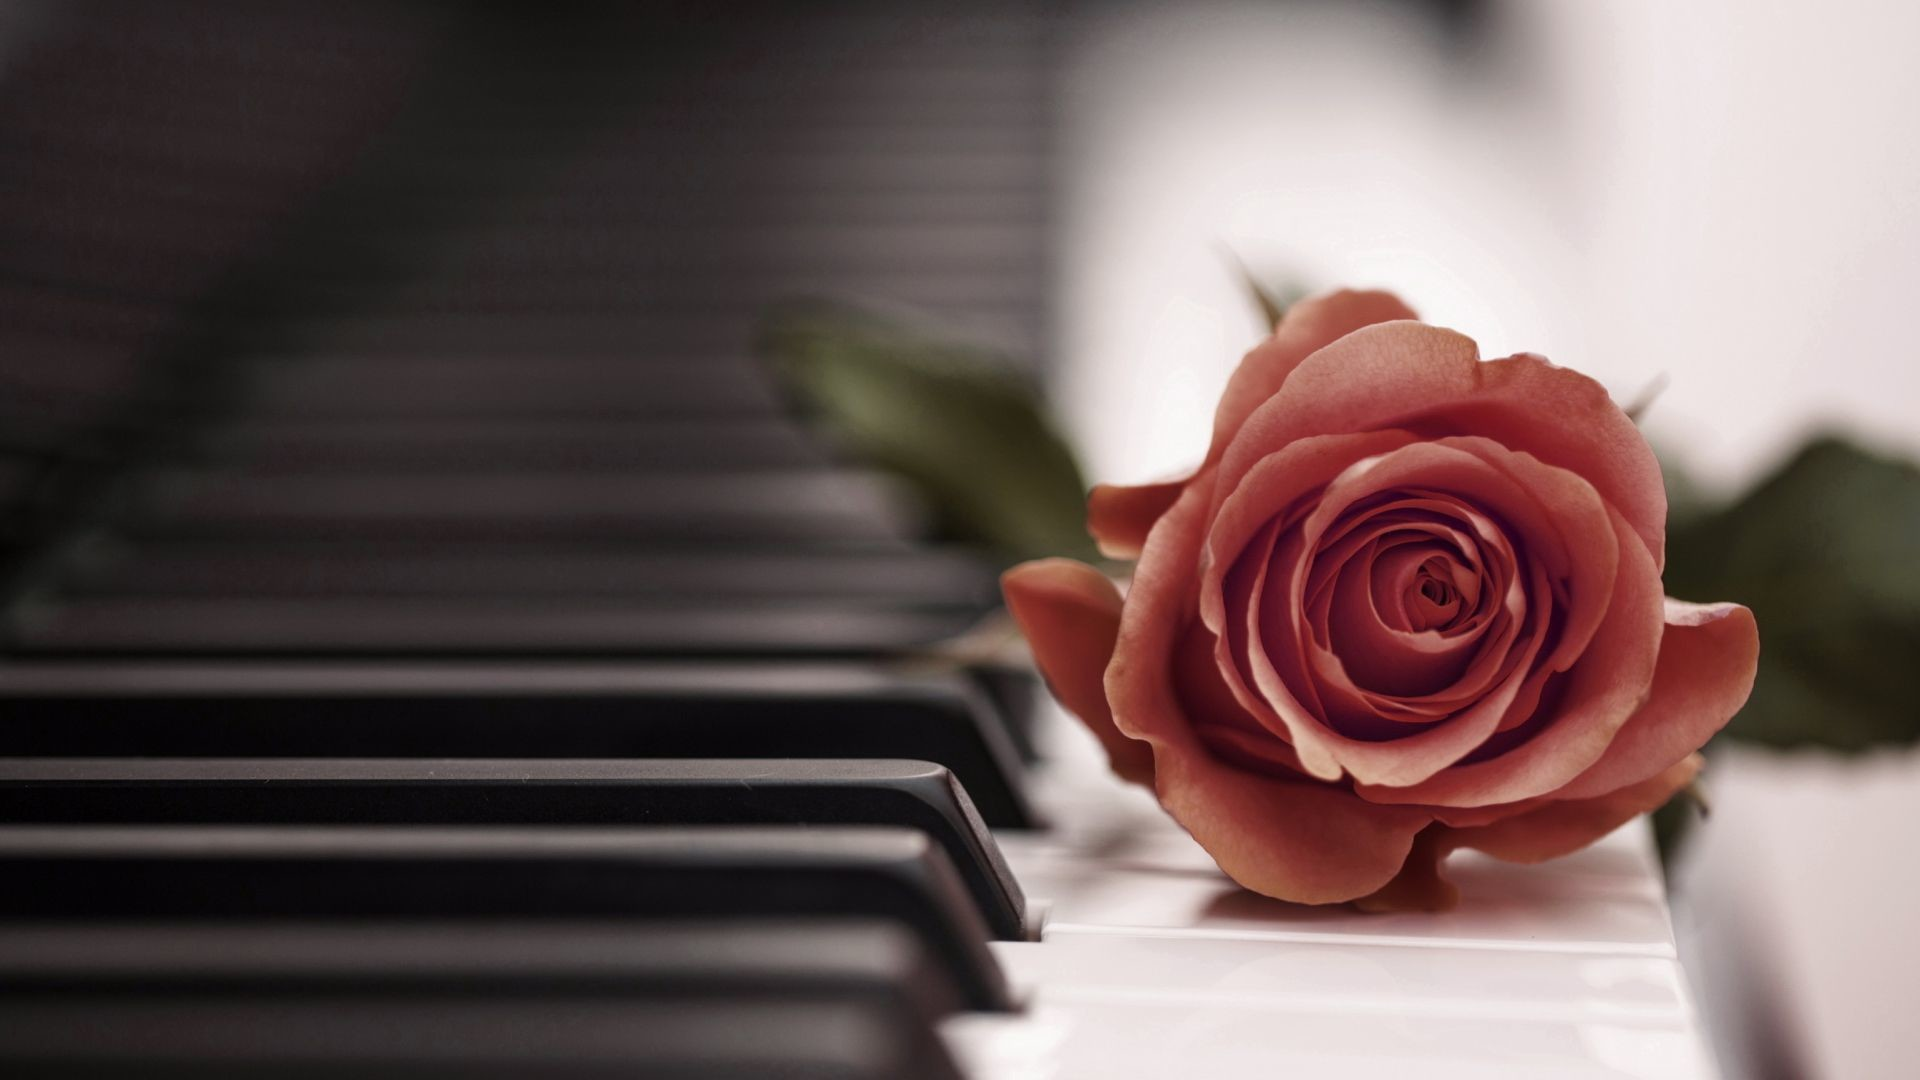 1920x1080 Rose Piano Wallpapers Phone with HD Desktop  px 501.35 KB